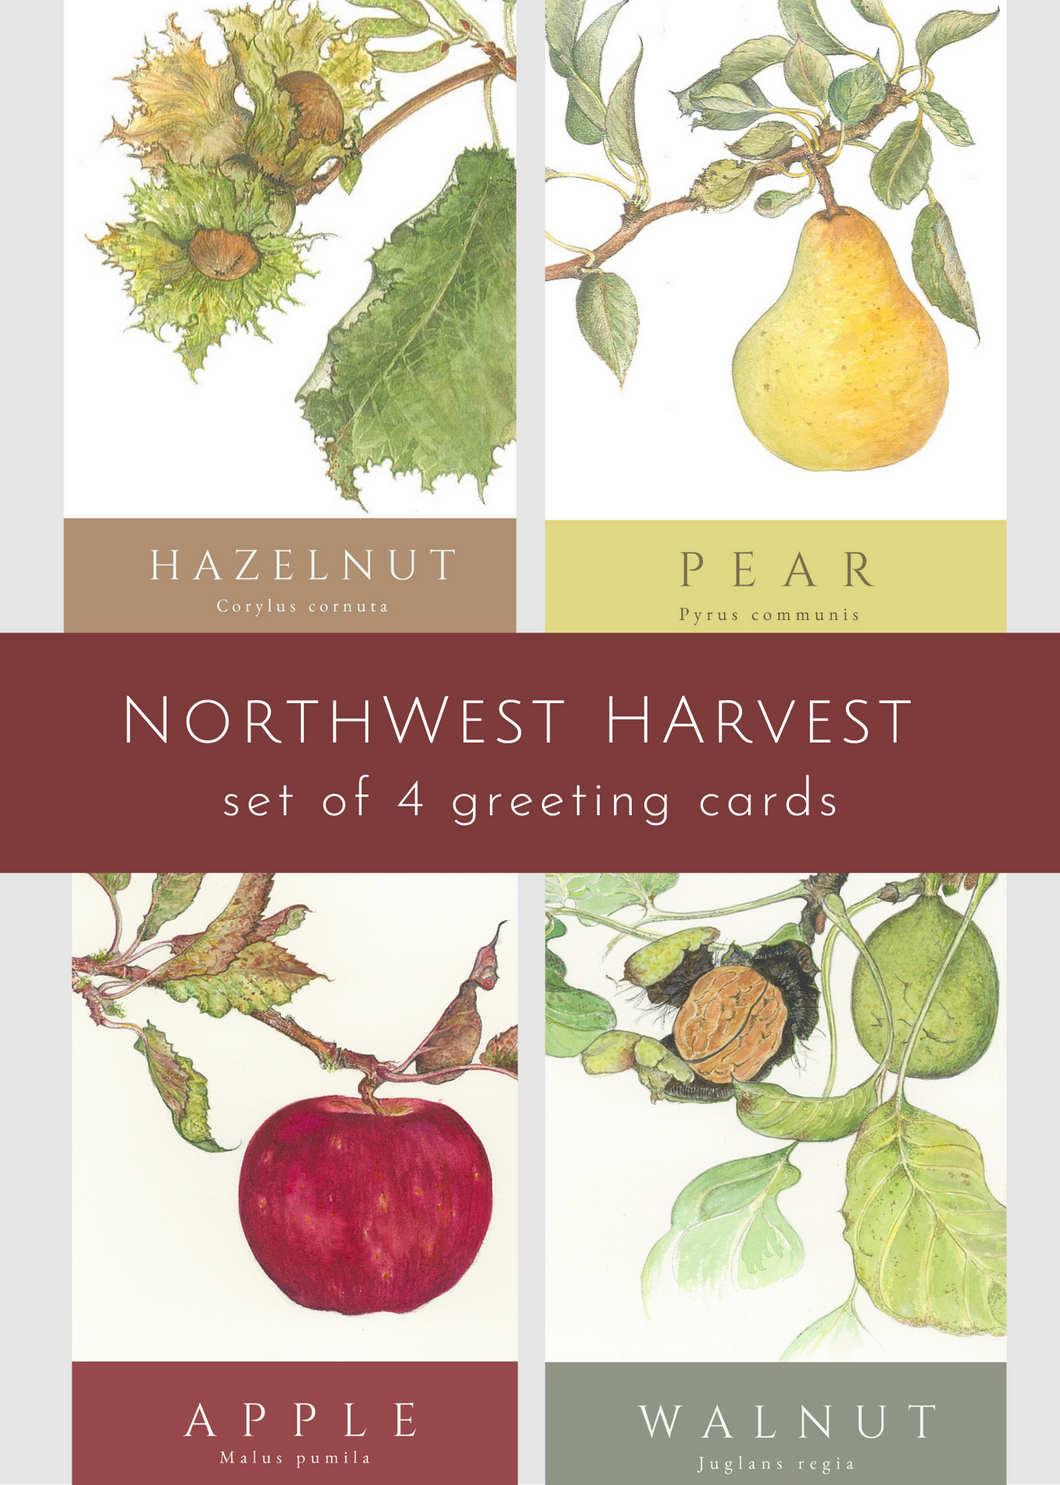 Northwest Harvest—set of 4